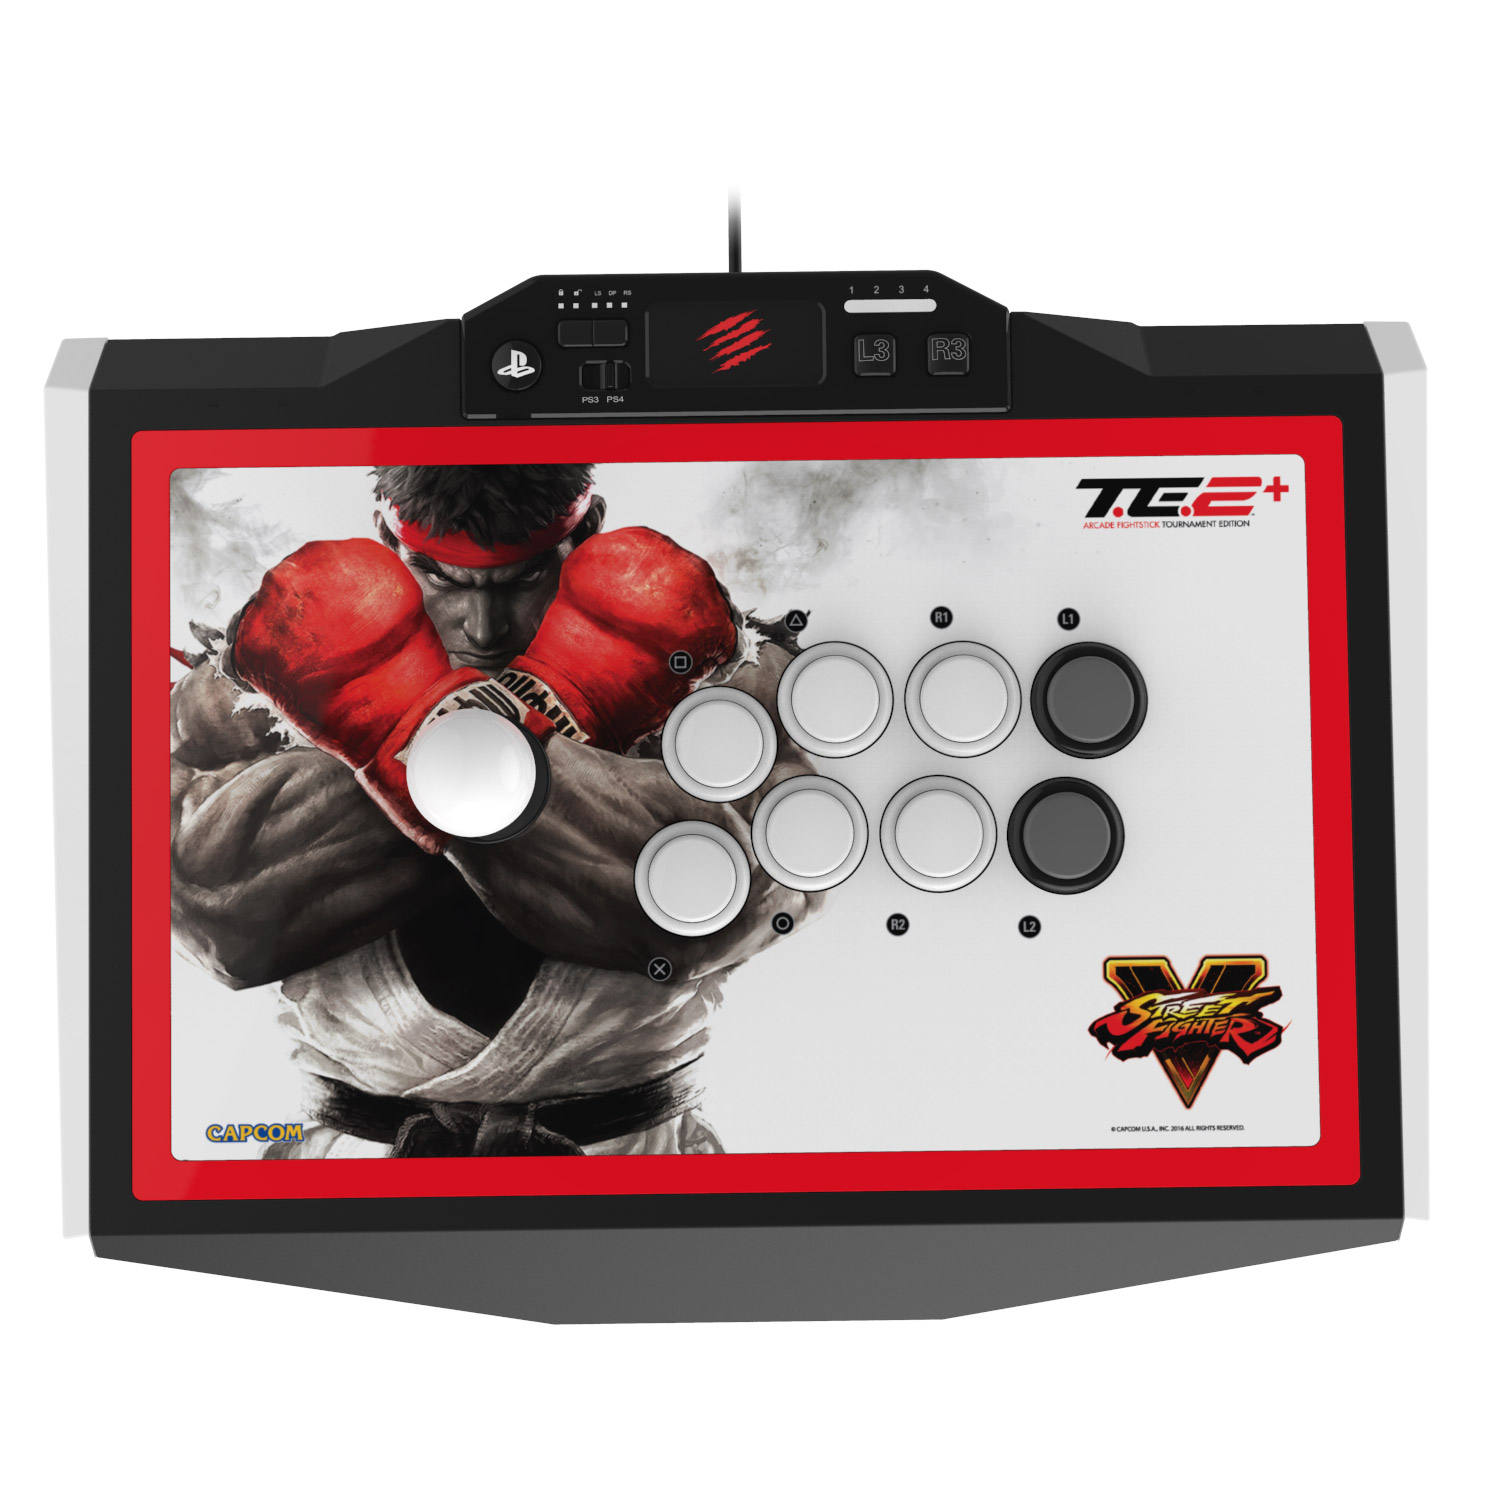 The Street Fighter 5 arcade stick beginner's guide for PC